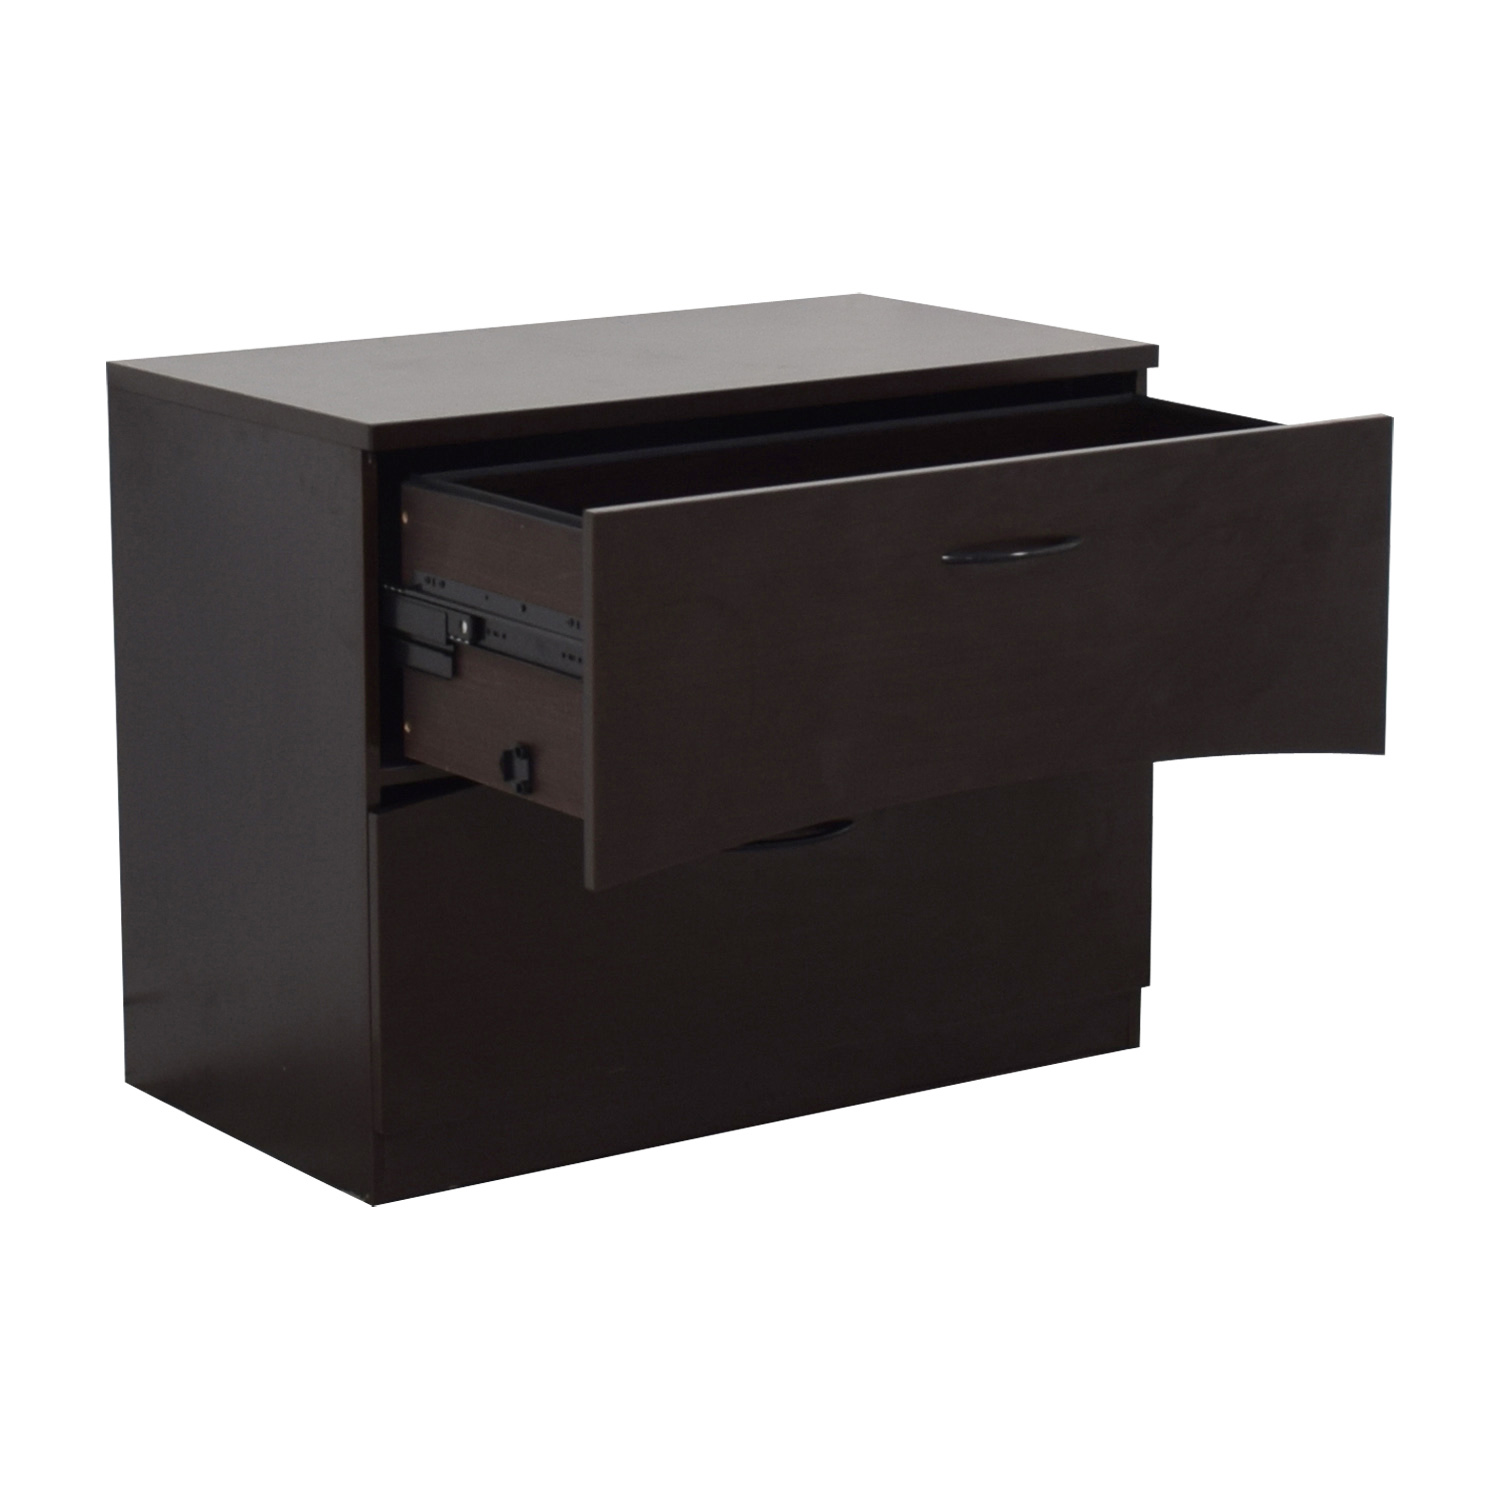 Mayline Mayline Two-Drawer Lateral File Cabinet dimensions